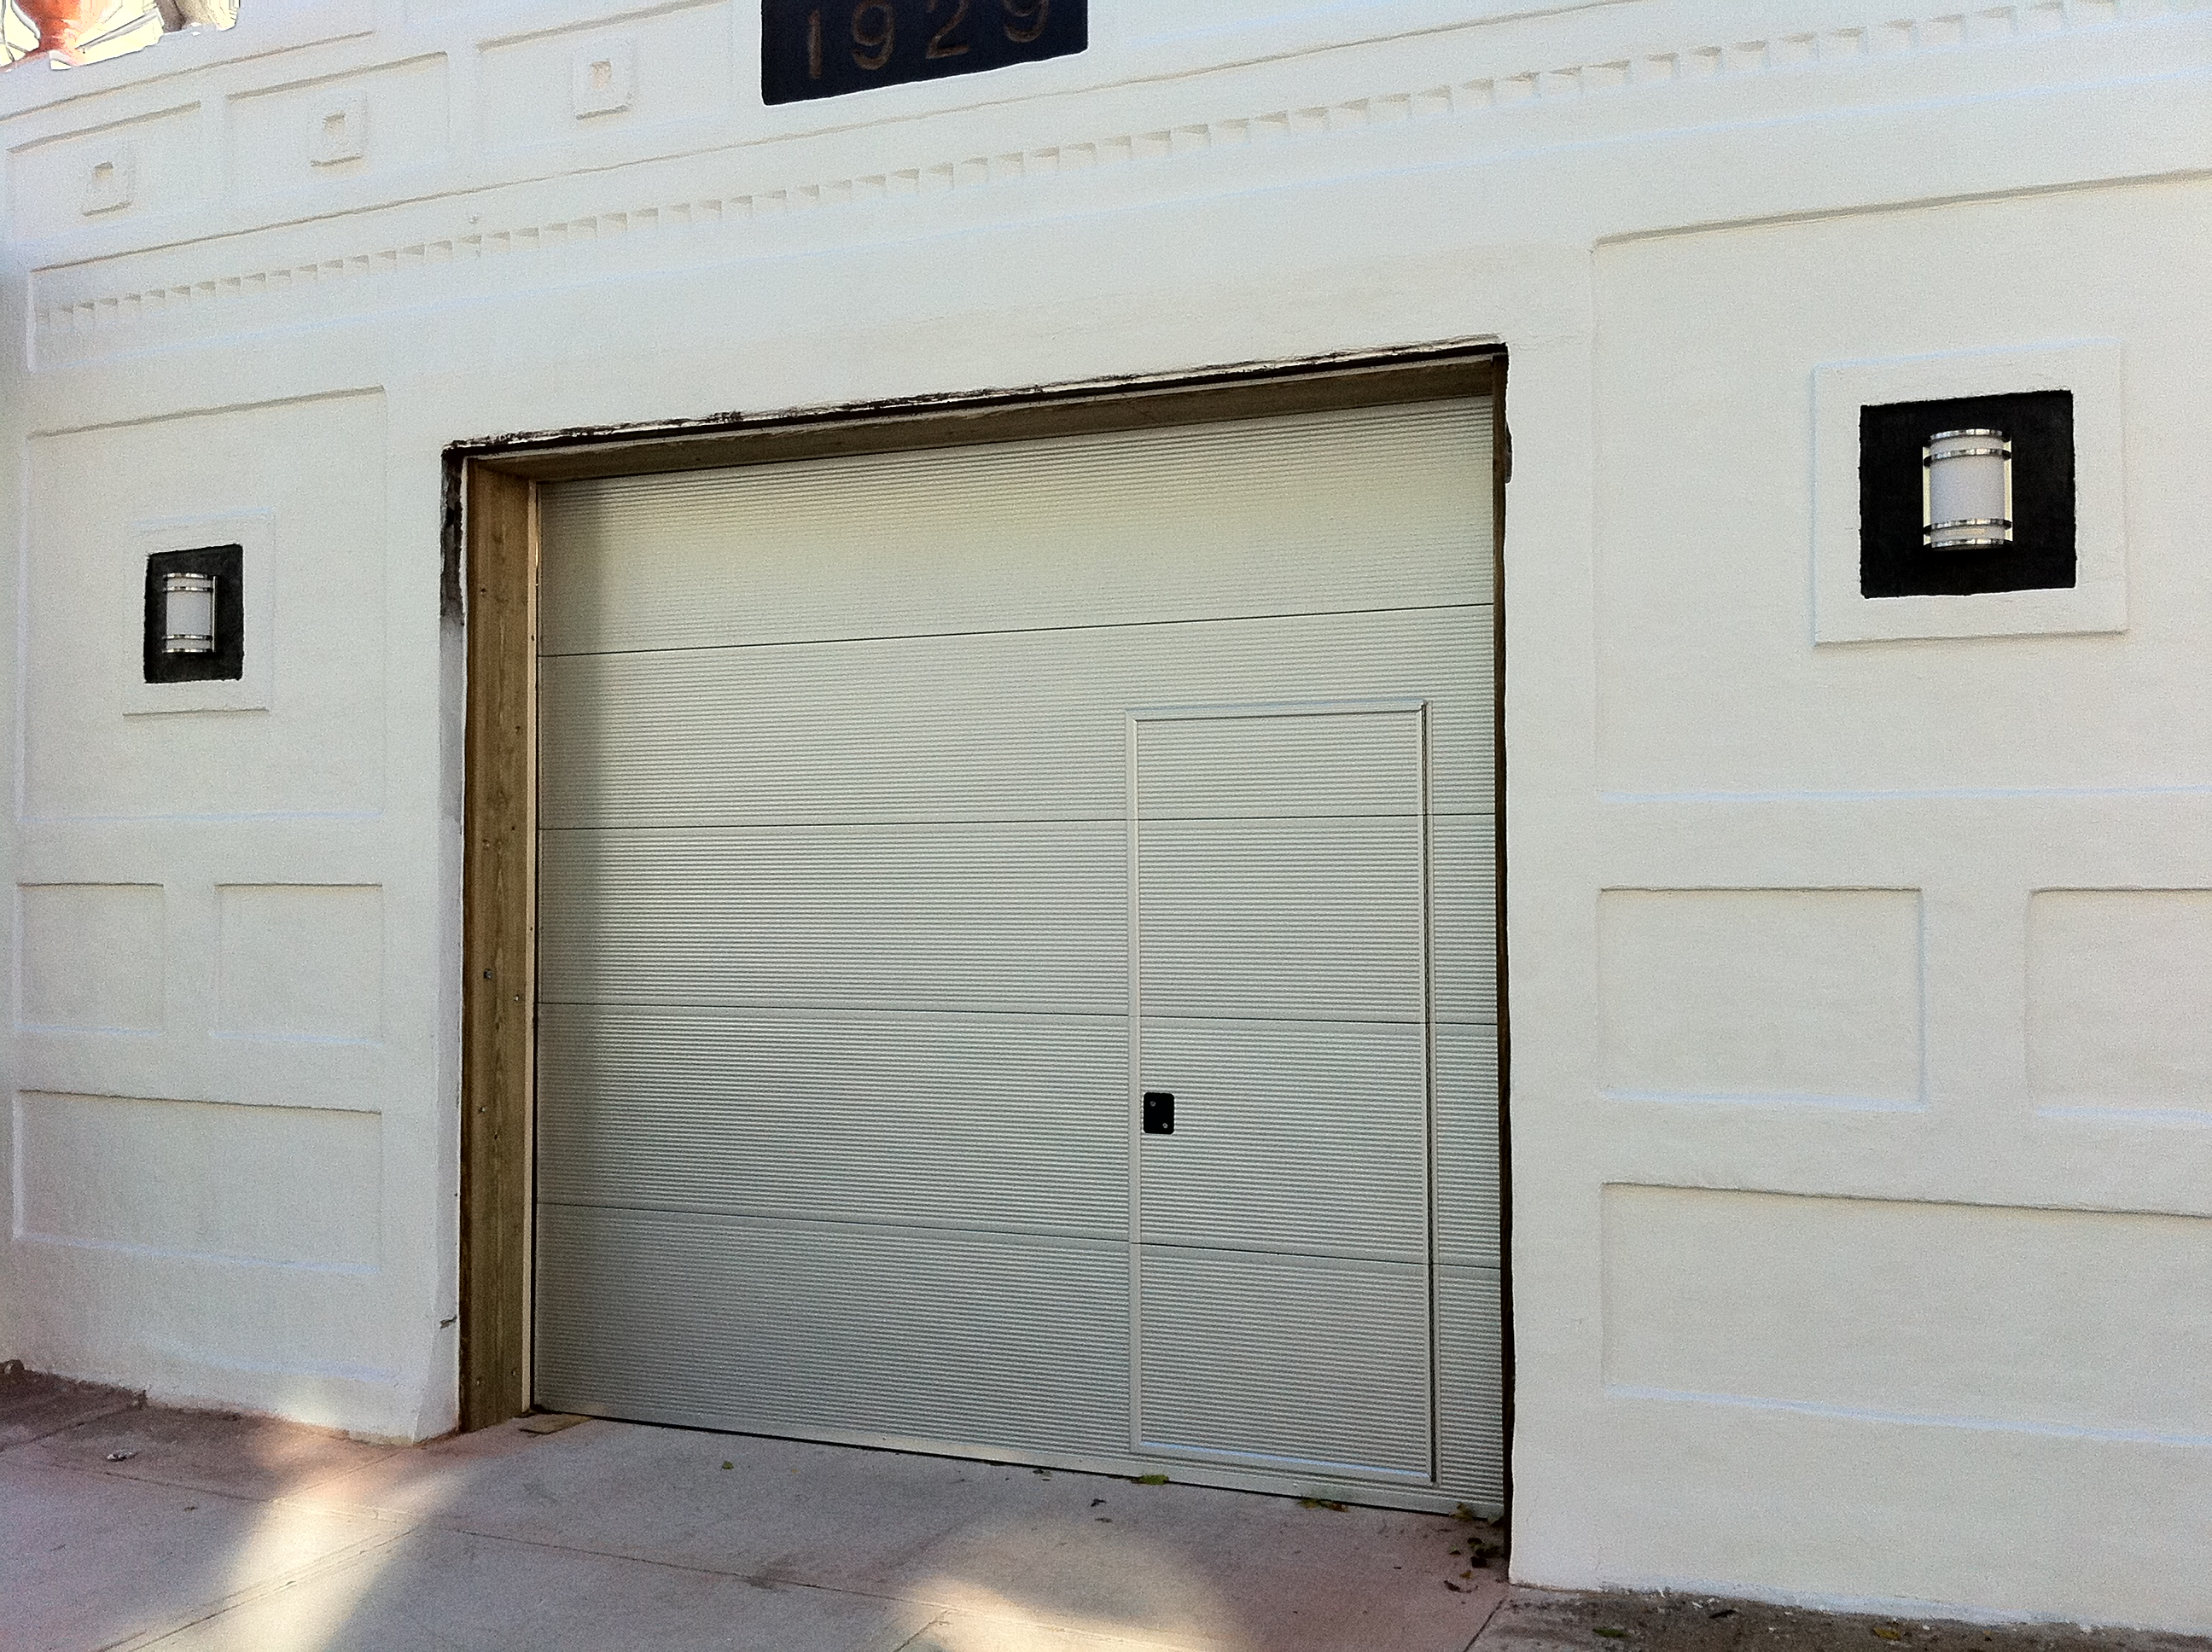 Le Meilleur » Topic Which Type Of Garage Door To Get For Security But Ce Mois Ci